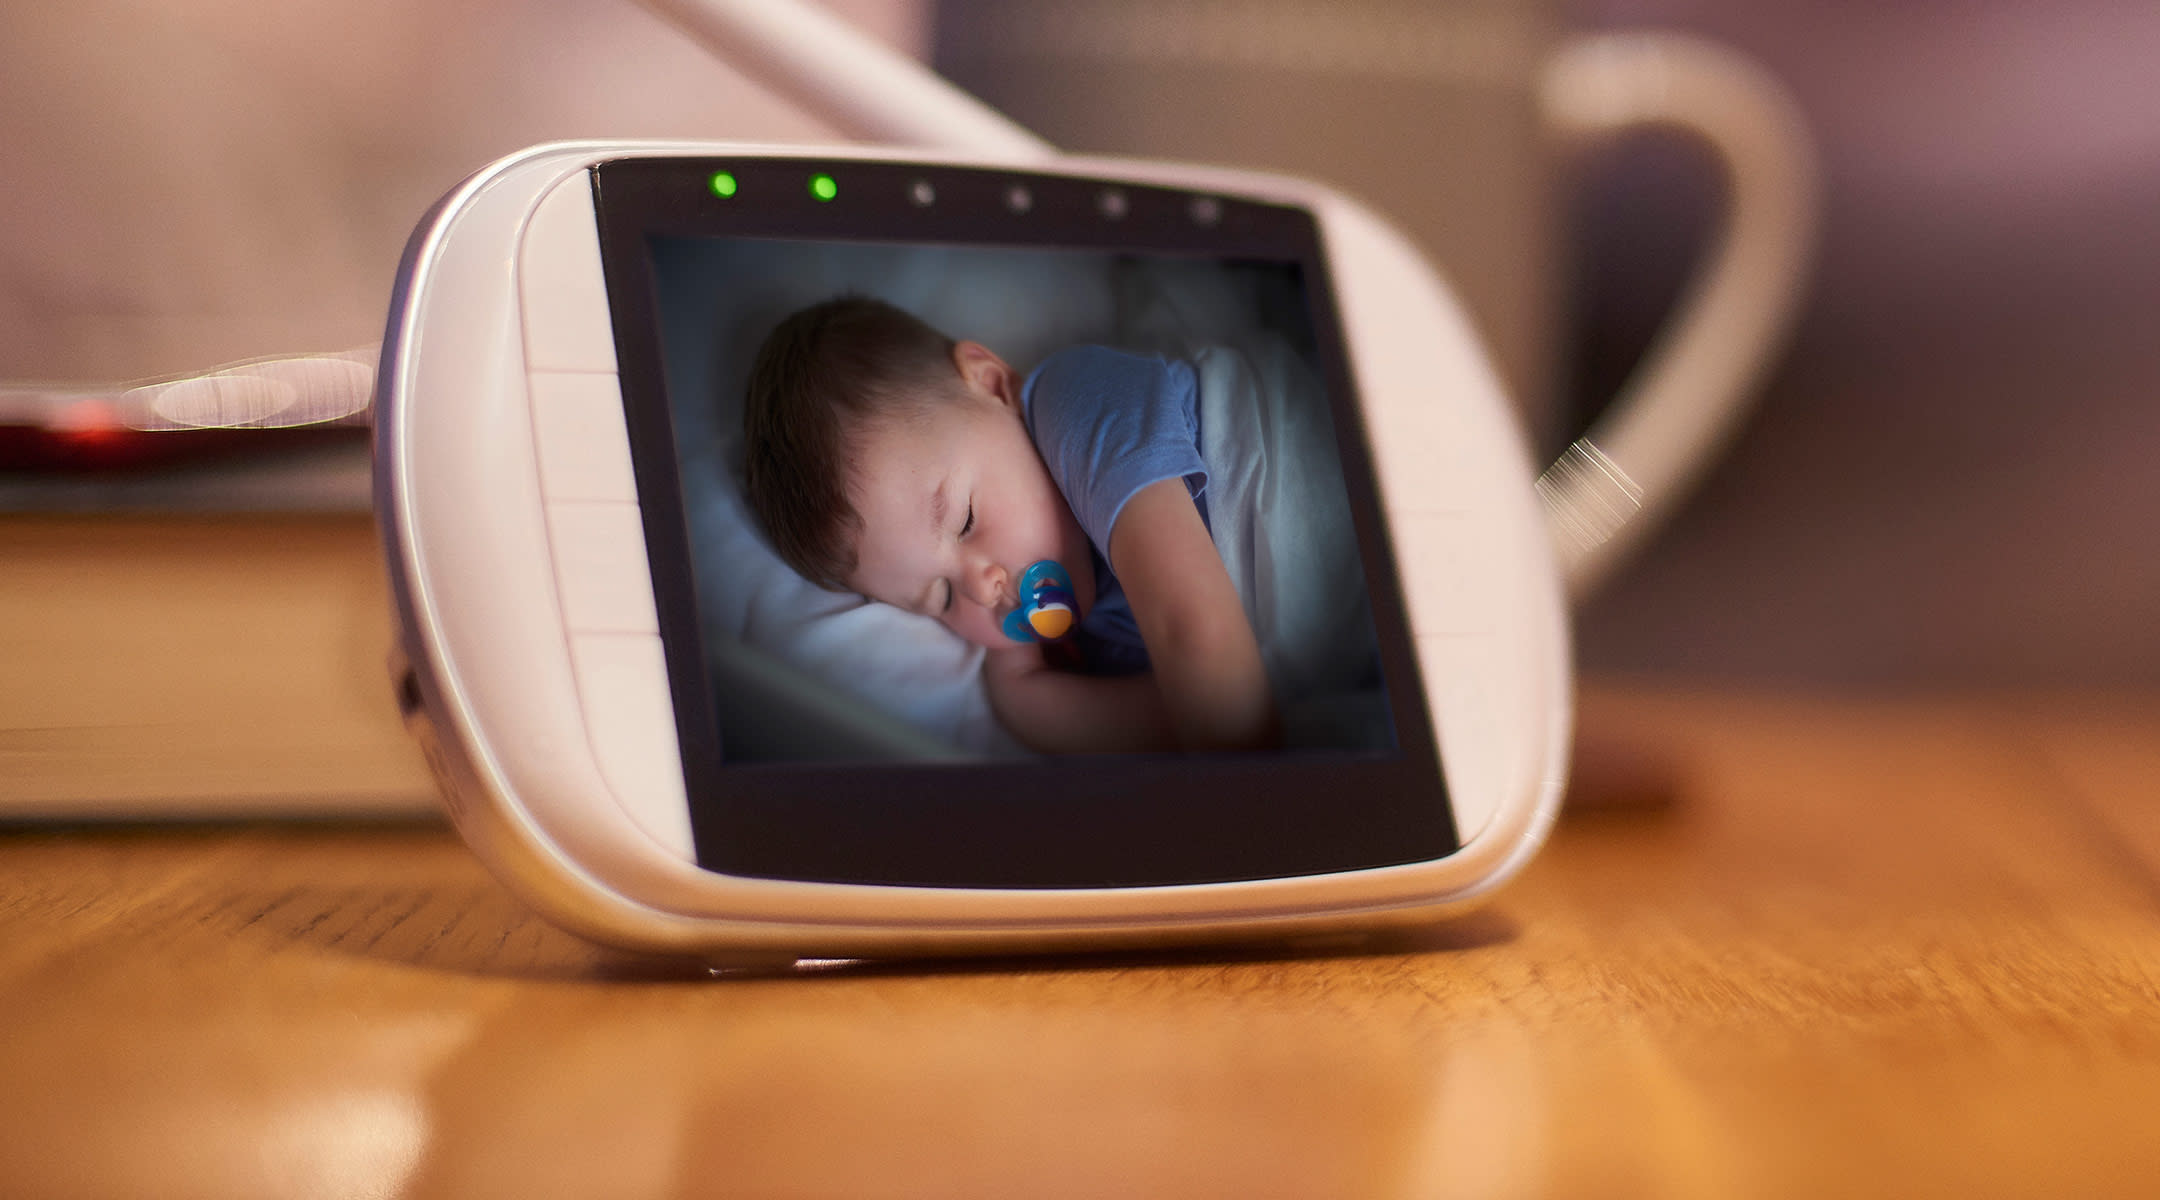 video baby monitor showing sleeping baby